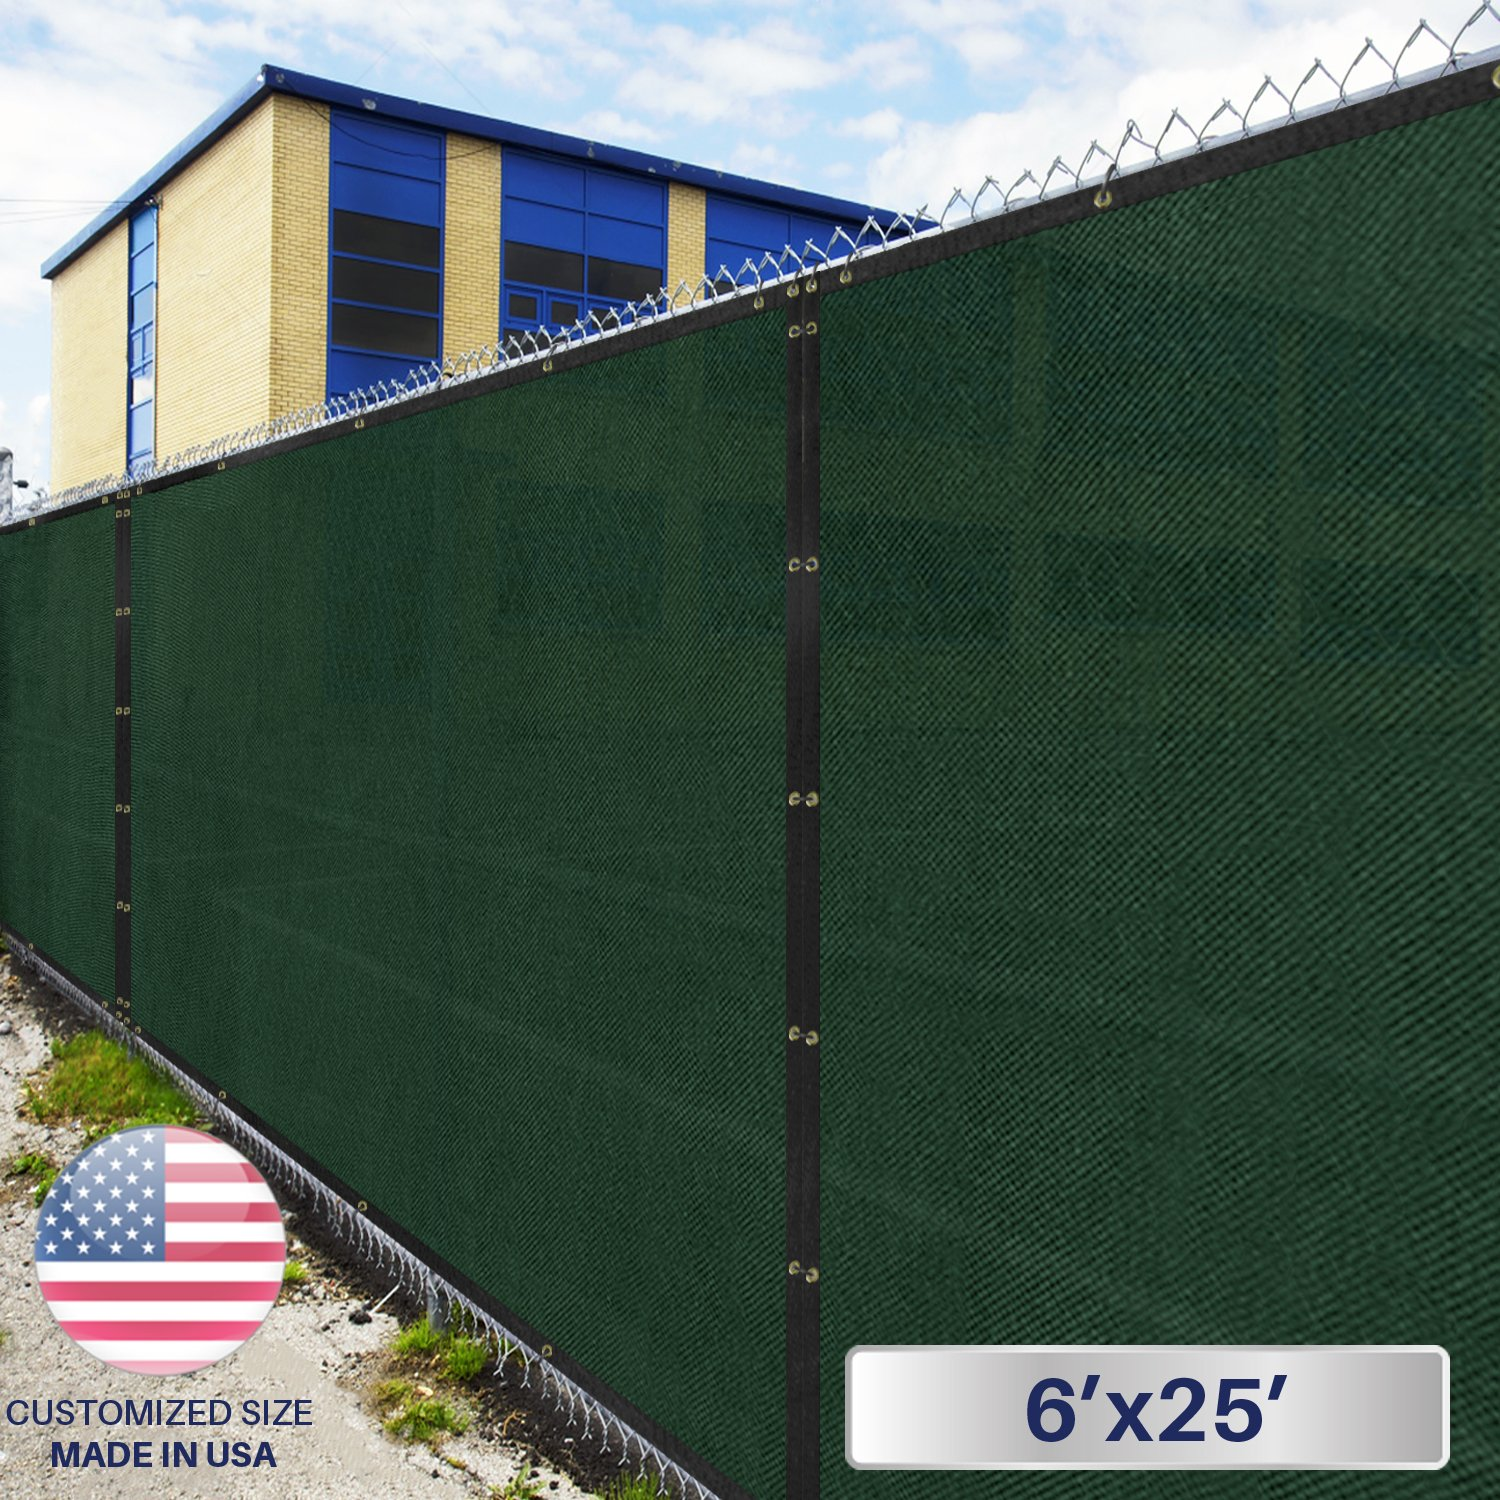 Windscreen4less IFD625 Privacy Fence Screen with Brass Grommet 85% Blockage Outdoor Mesh Fencing Cover Netting 150GSM Fabric 6' x 25', Green